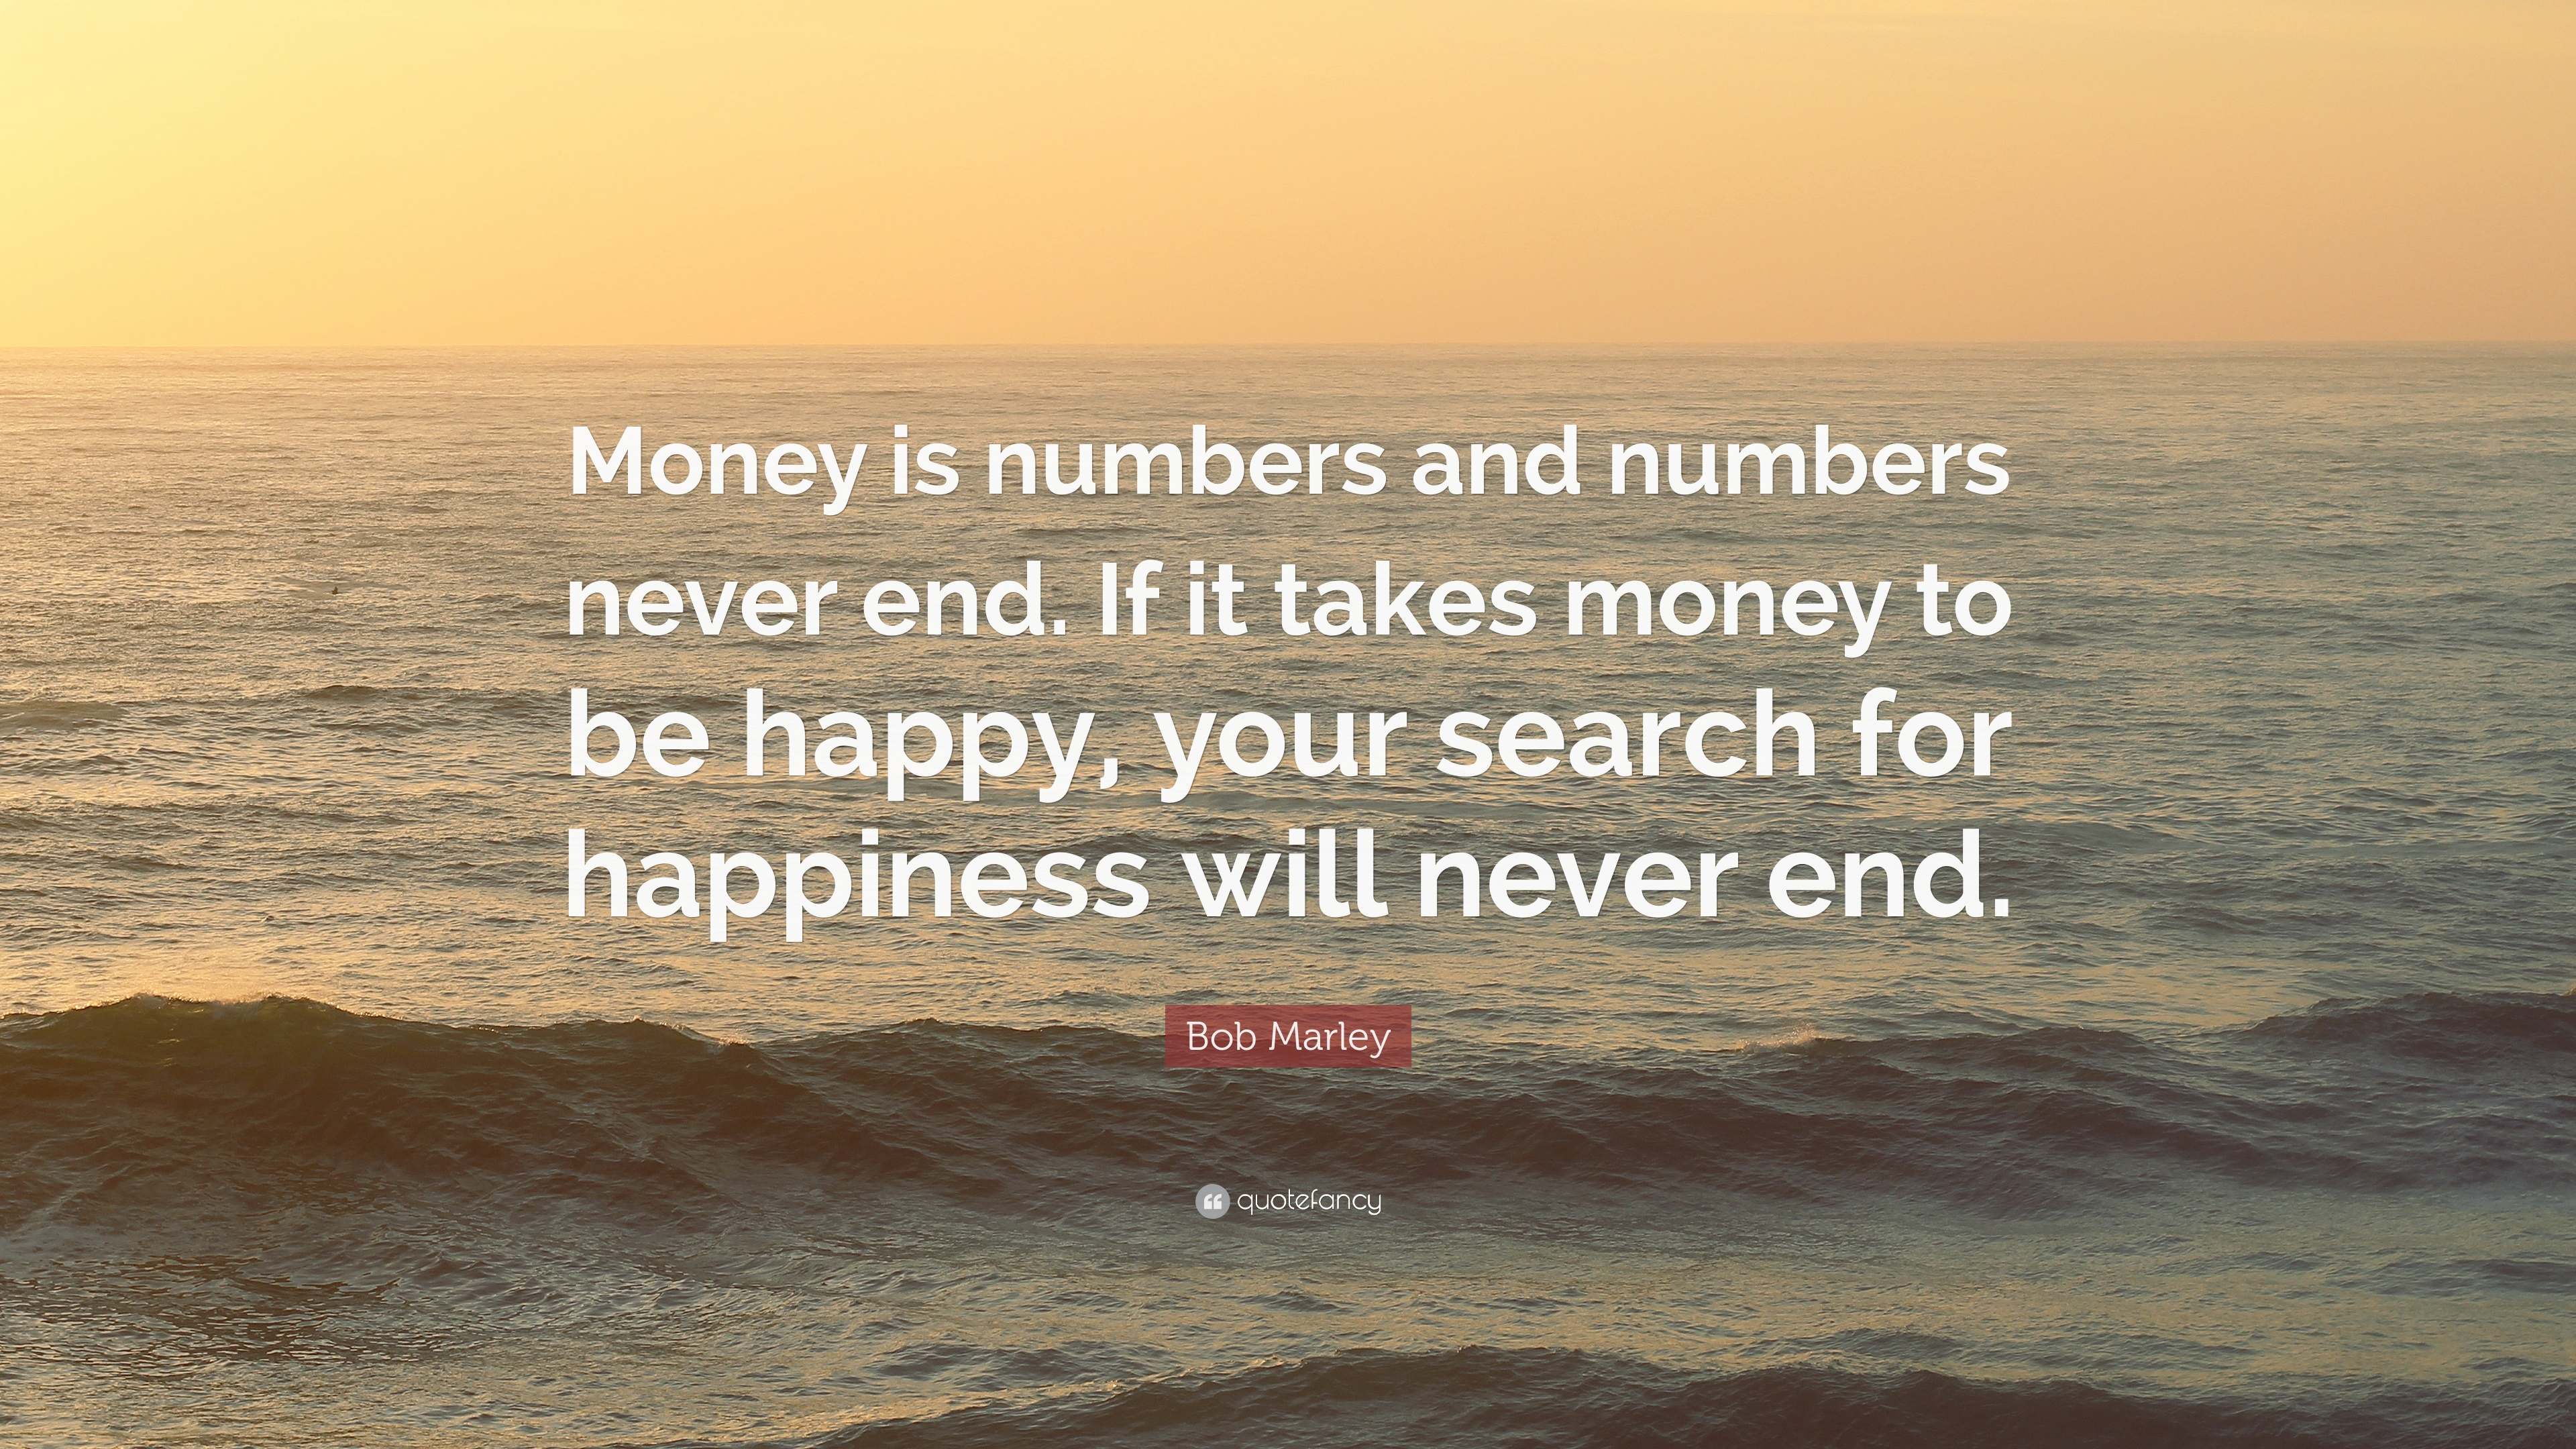 The Relationship Between Money and Happiness